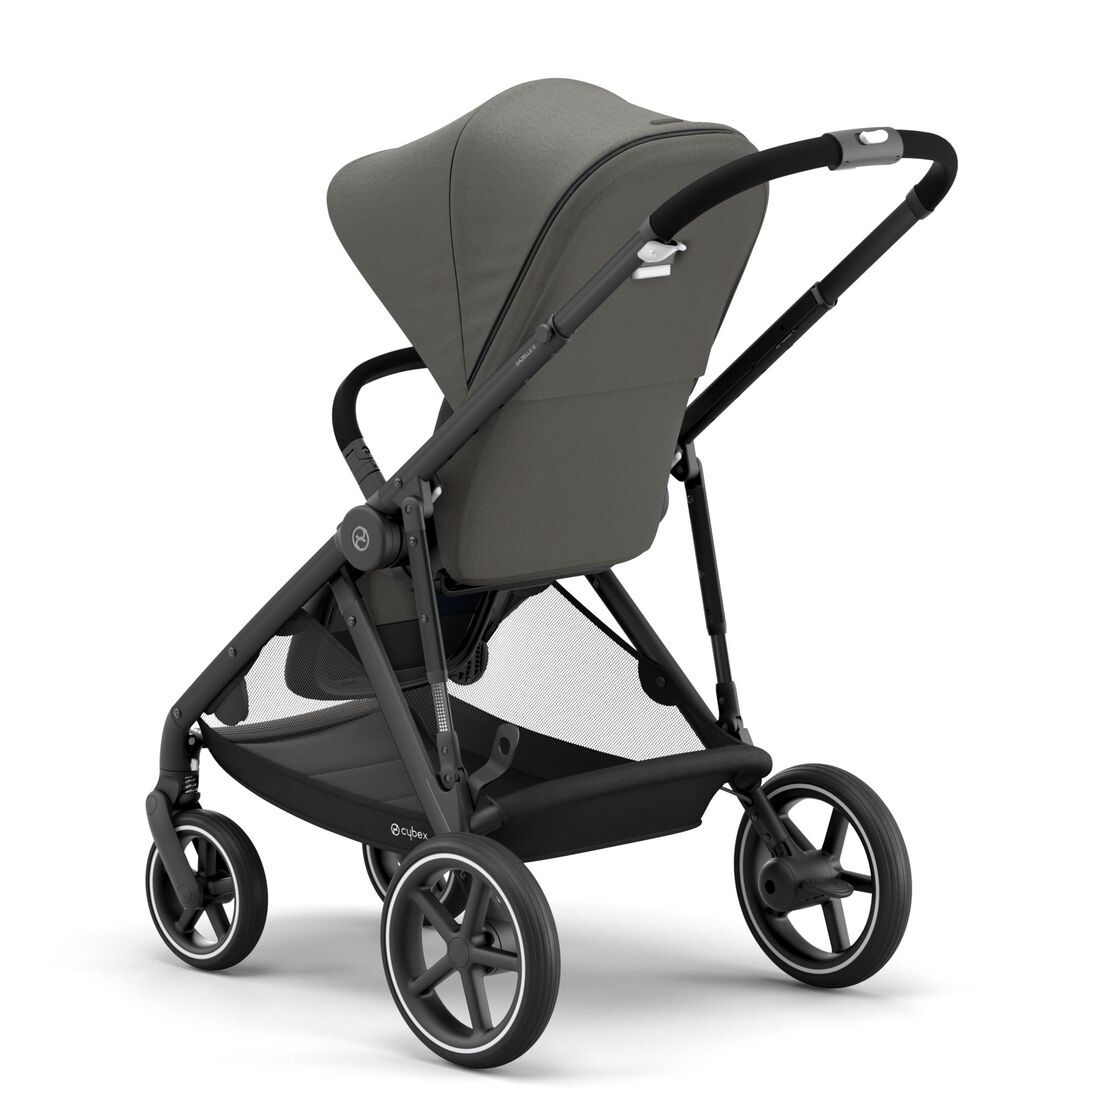 CYBEX Gazelle S - Soho Grey (Schwarzer Rahmen) in Soho Grey (Black Frame) large Bild 6